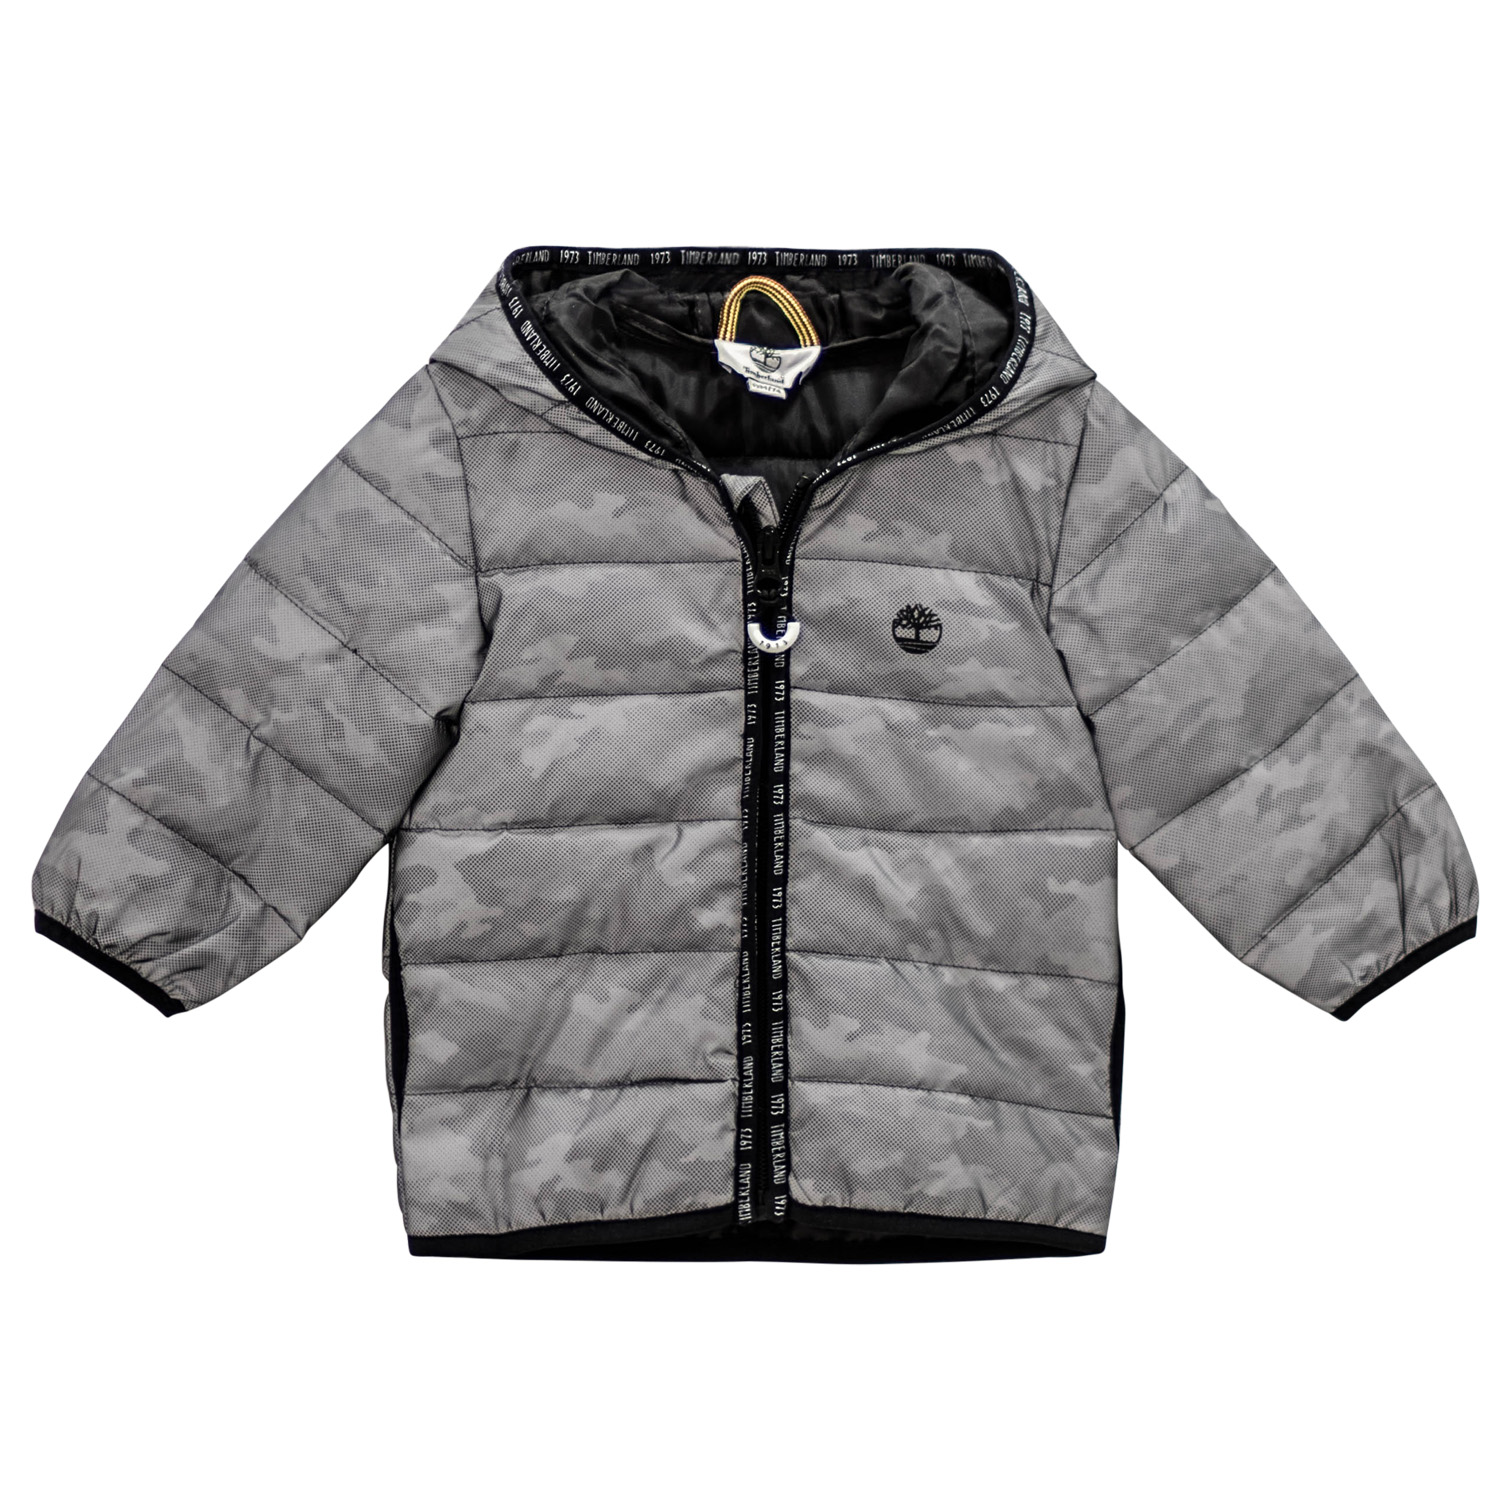 ddfa51691 Silver Reflective Water Repellent Puffer Coat